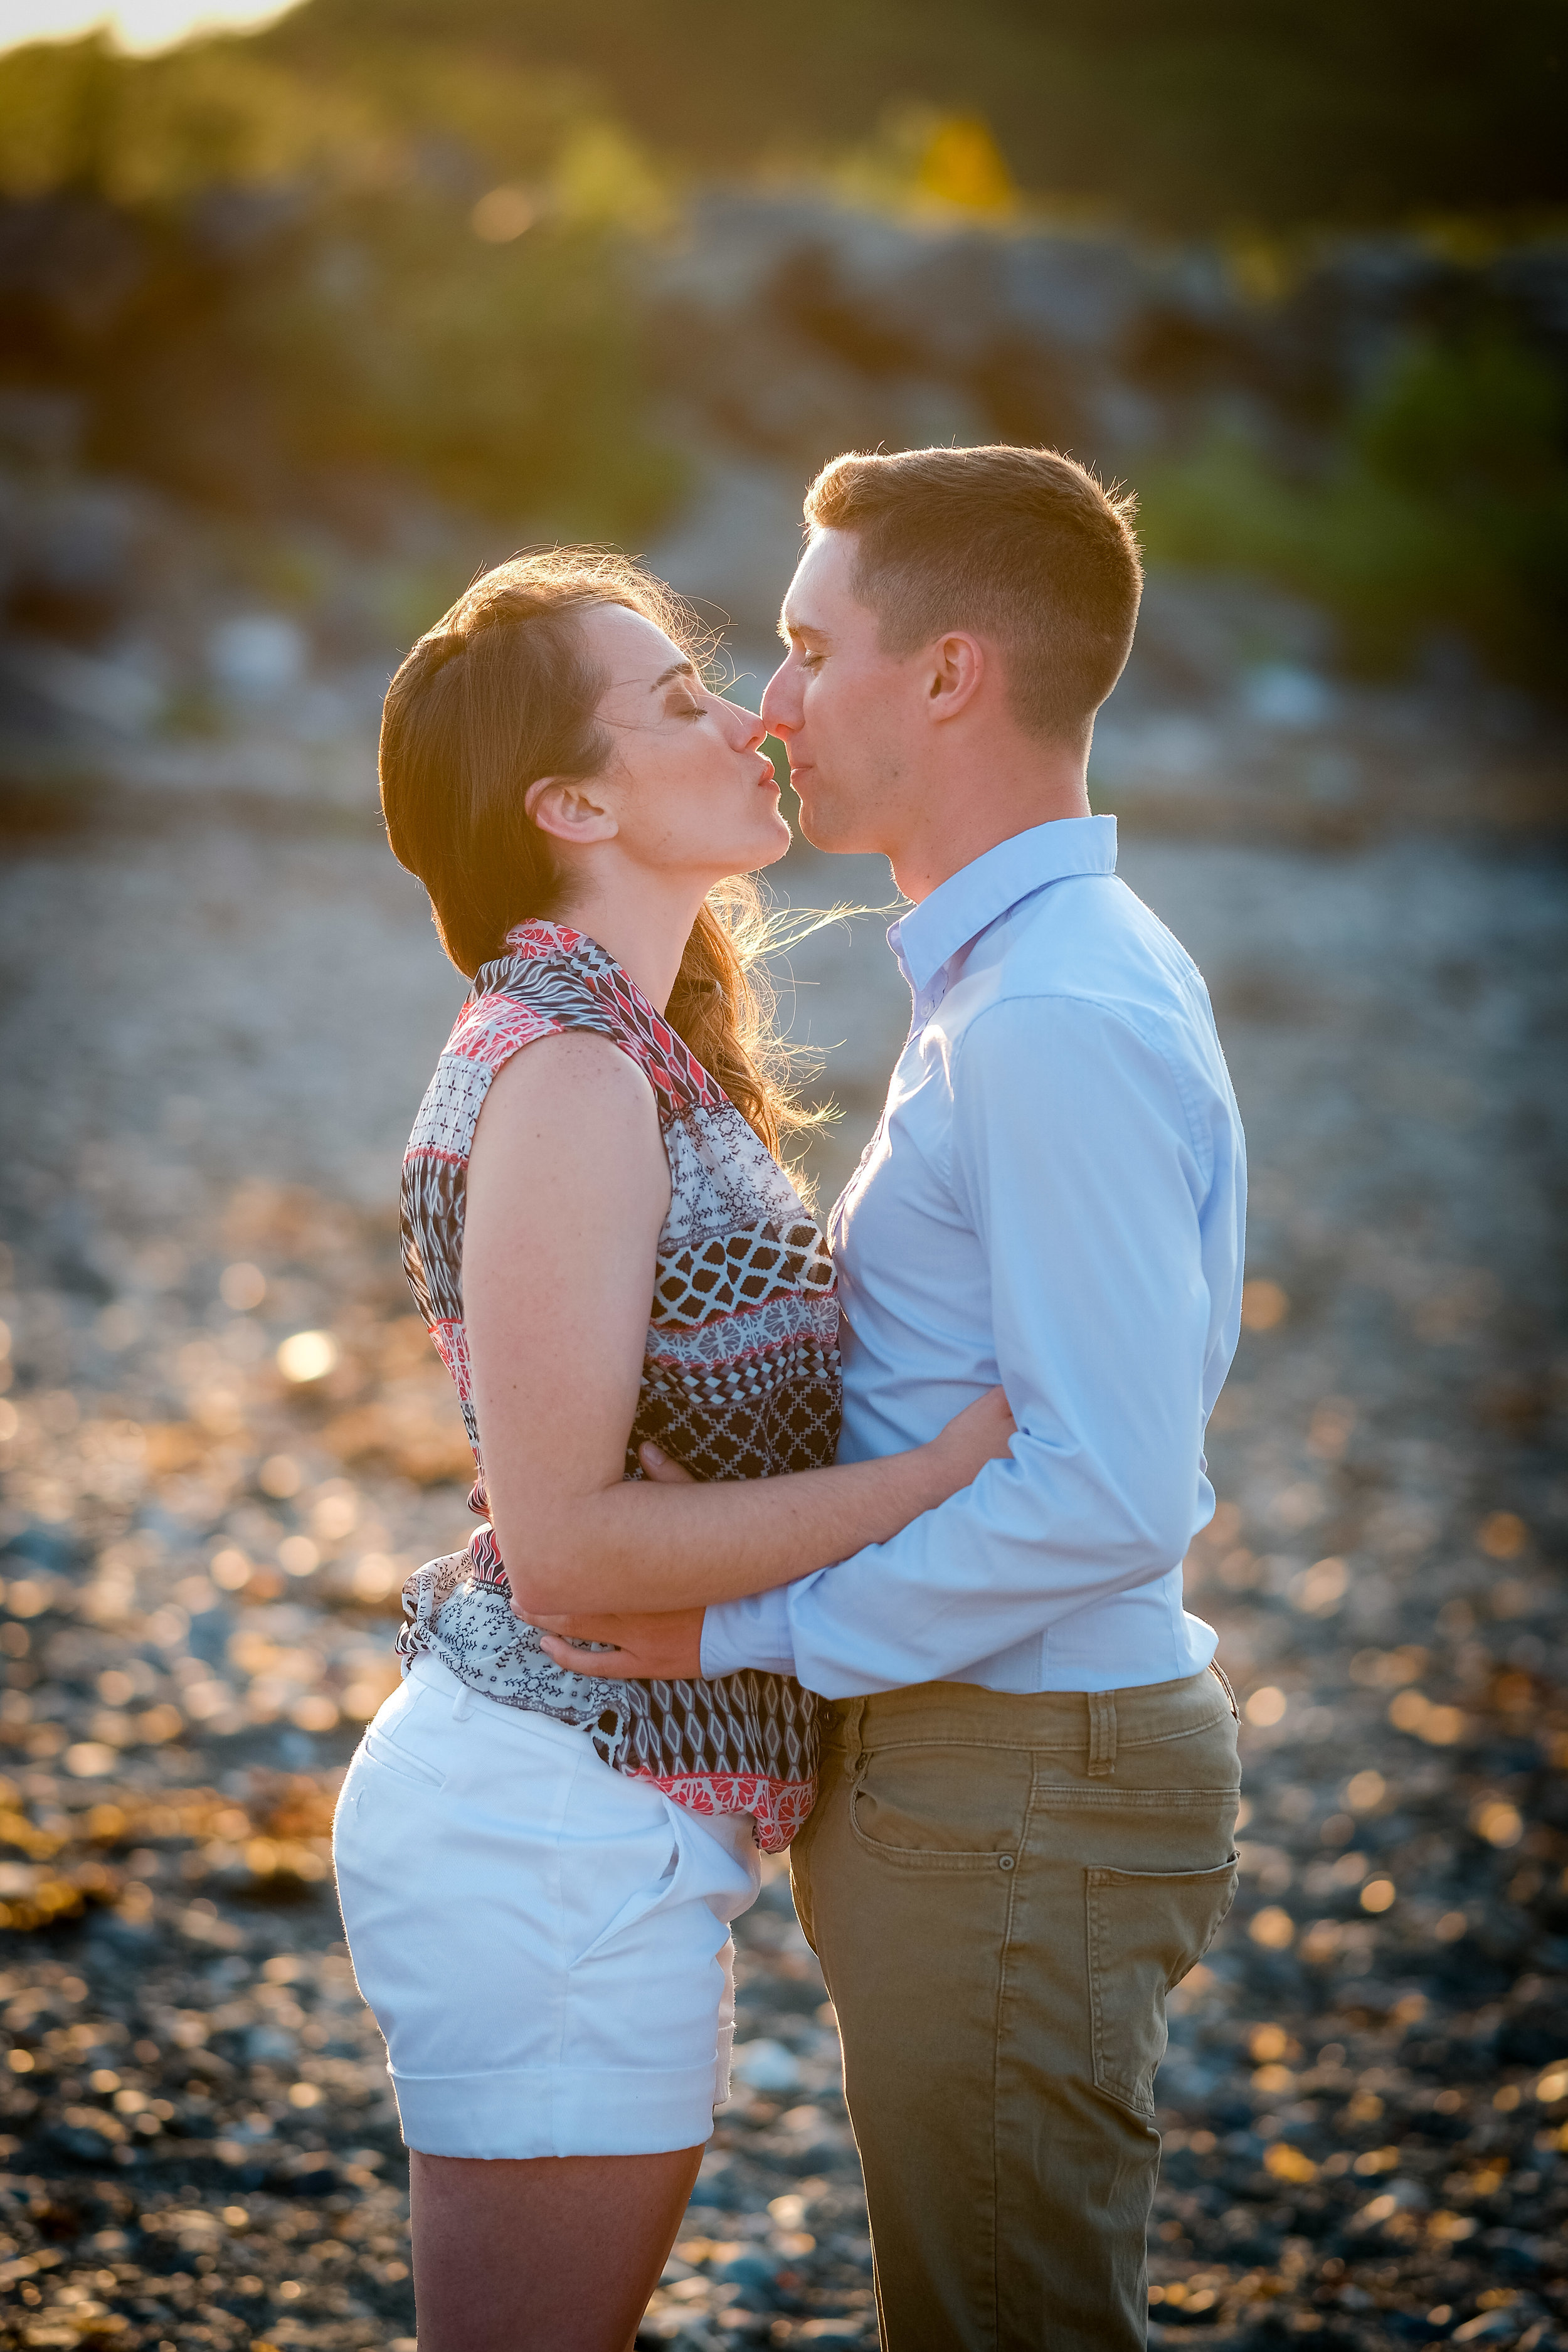 Periwinkle-Cove-Engagement-Photography-182.jpg